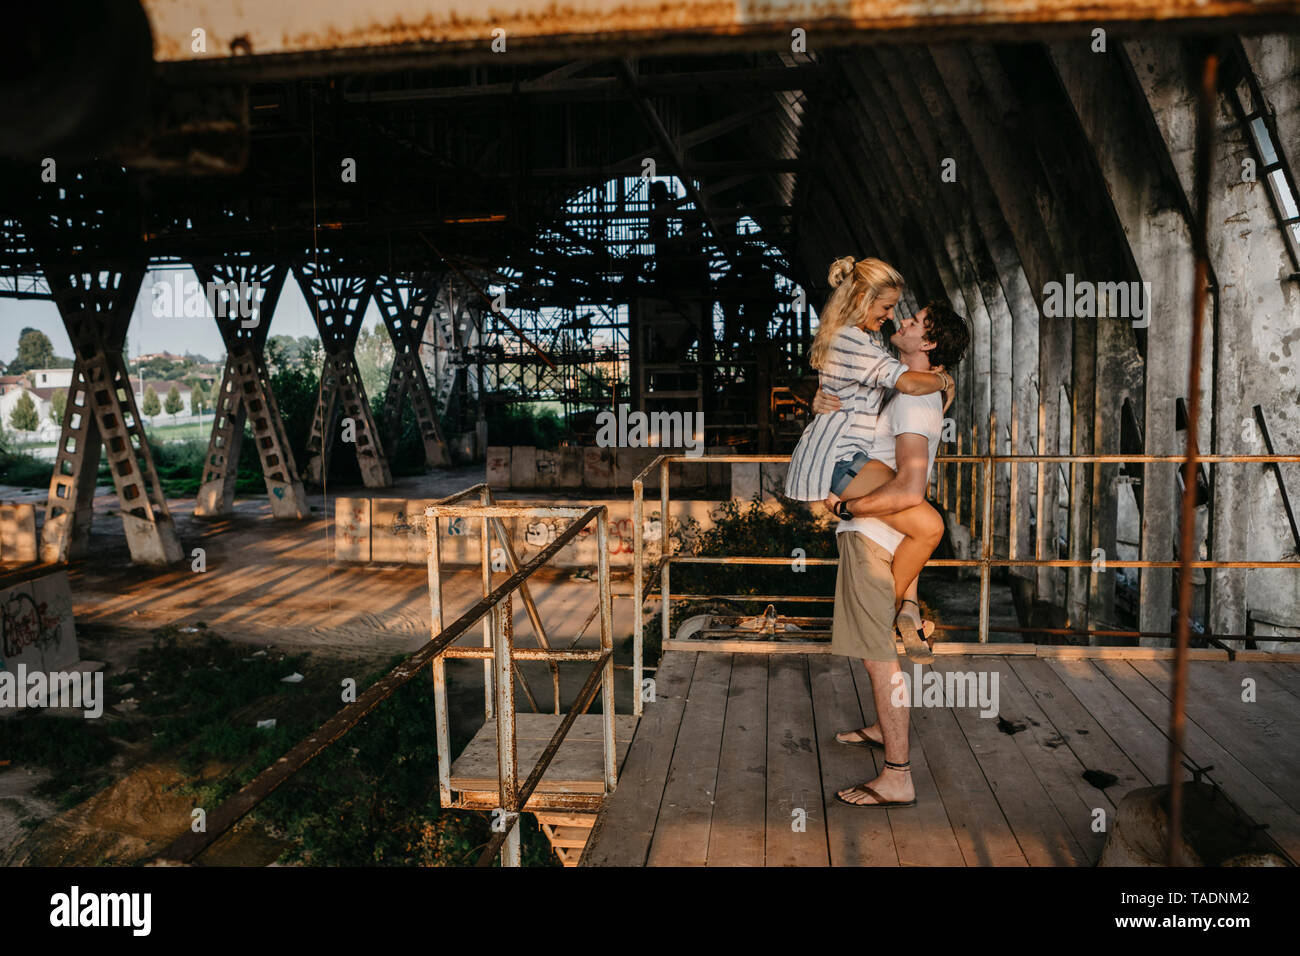 Happy young man carrying girlfriend in an old train station - Stock Image